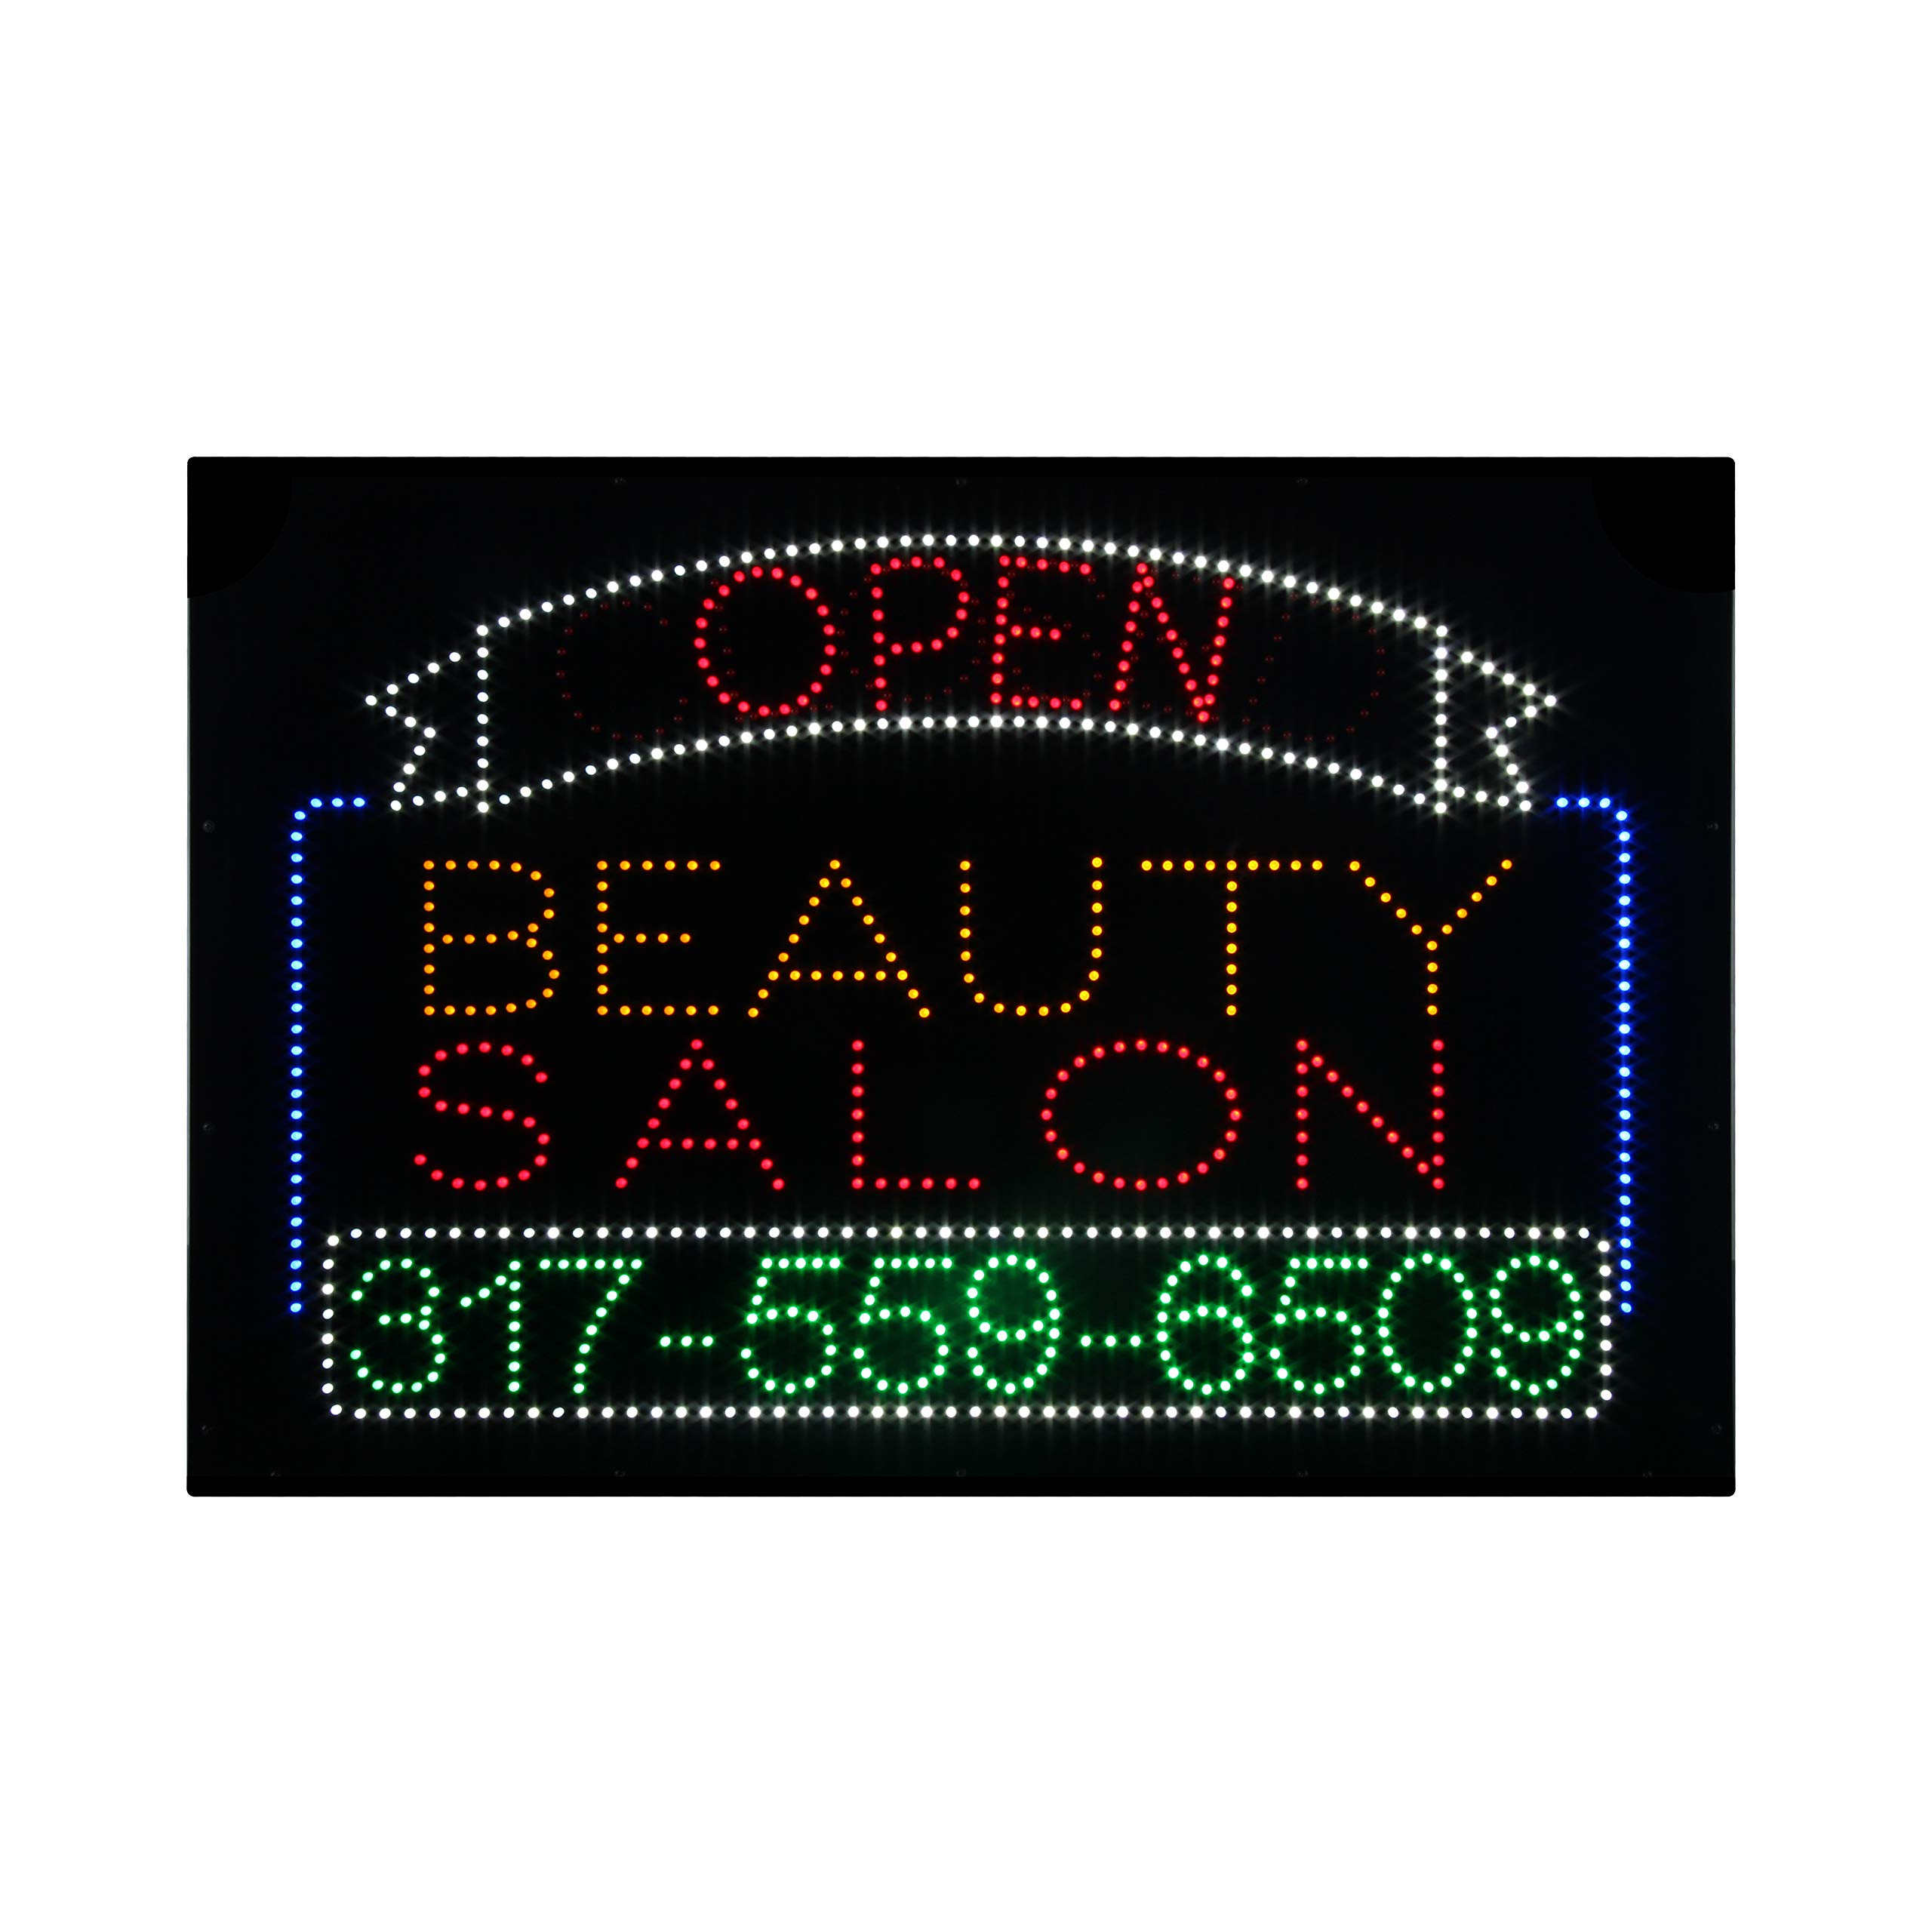 LED Beauty Salon Open Closed 2 in 1 Light Sign Super Bright Electric Advertising Message Display Board for Nails Spa Pedicure Facial Waxing Business Shop Store Window Bedroom 36 x 24 inches